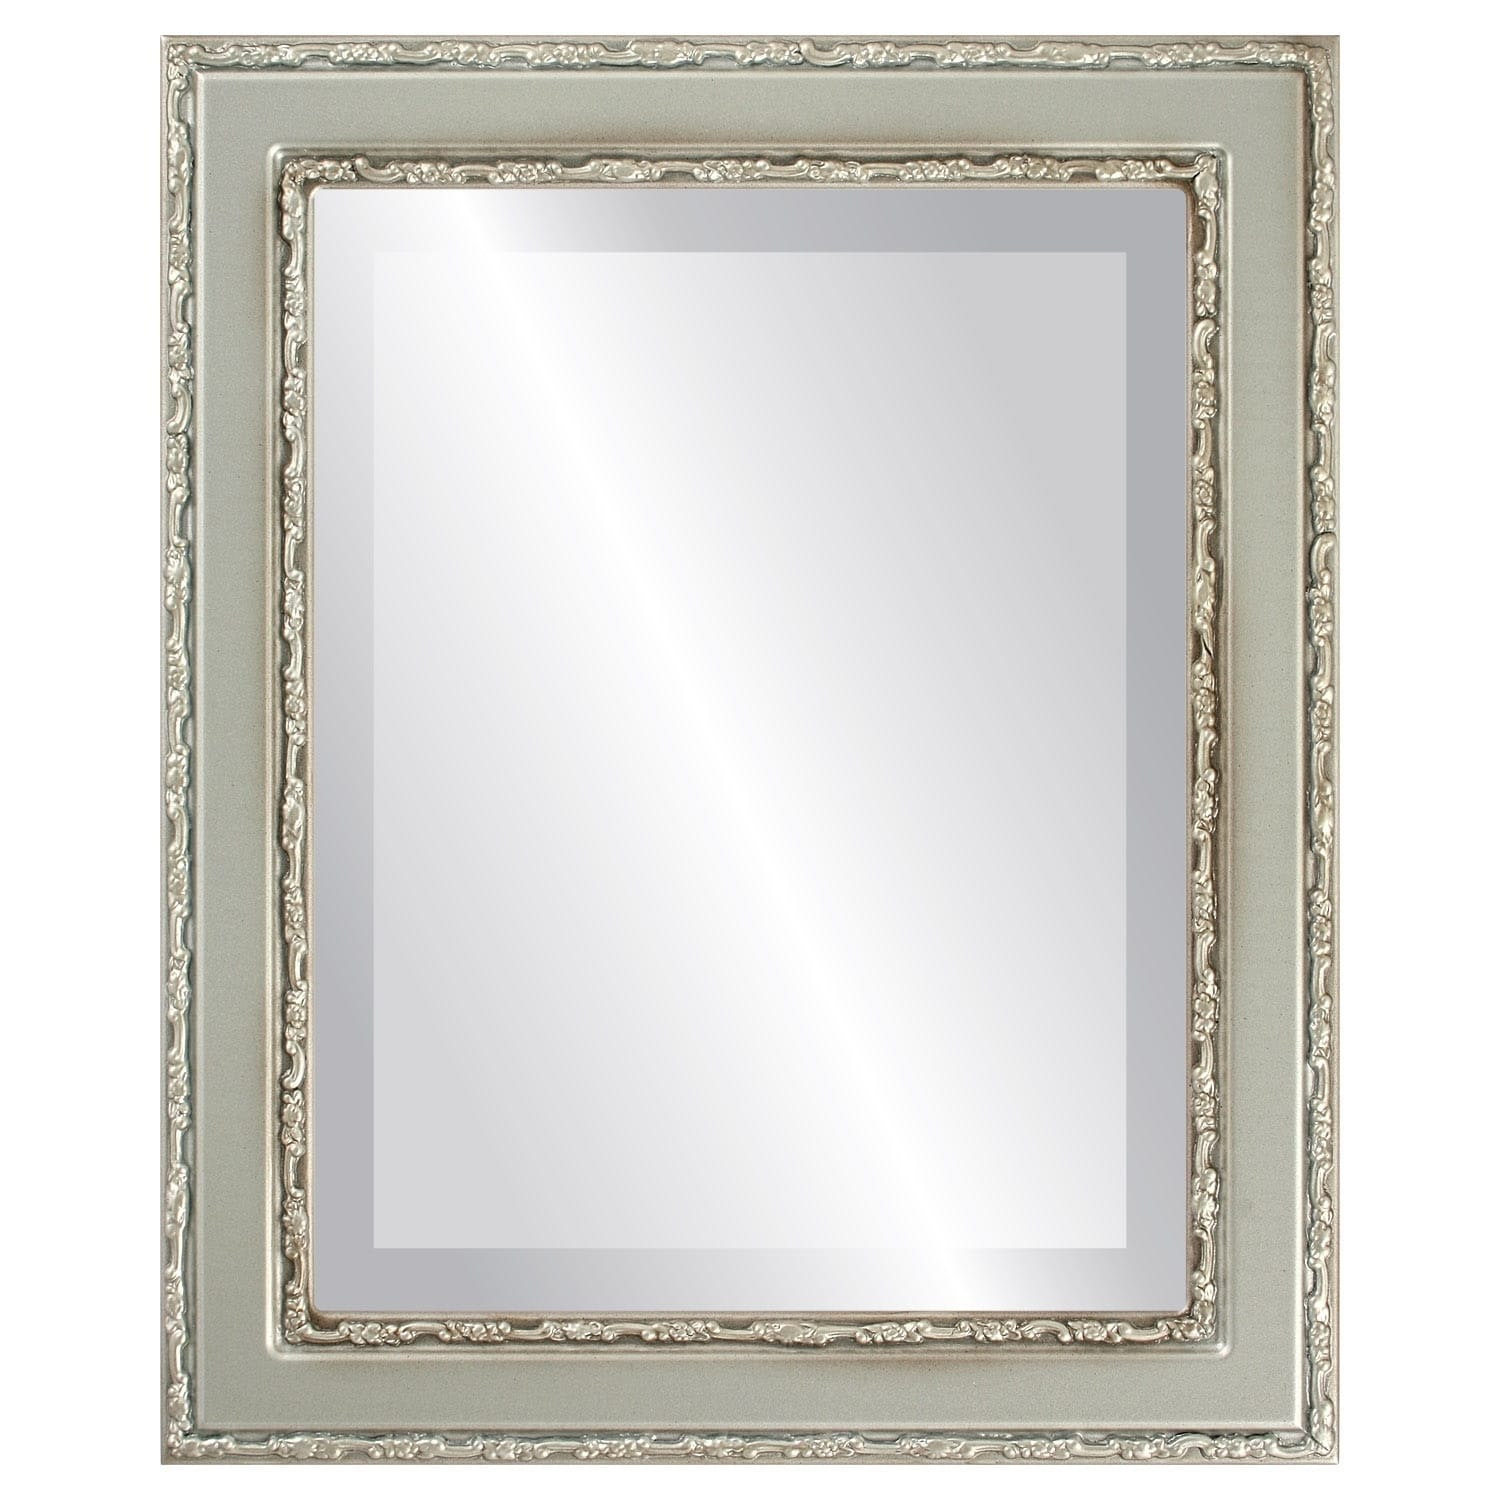 Monticello Framed Rectangle Mirror in Silver Shade - Silver/Brown (21x27)